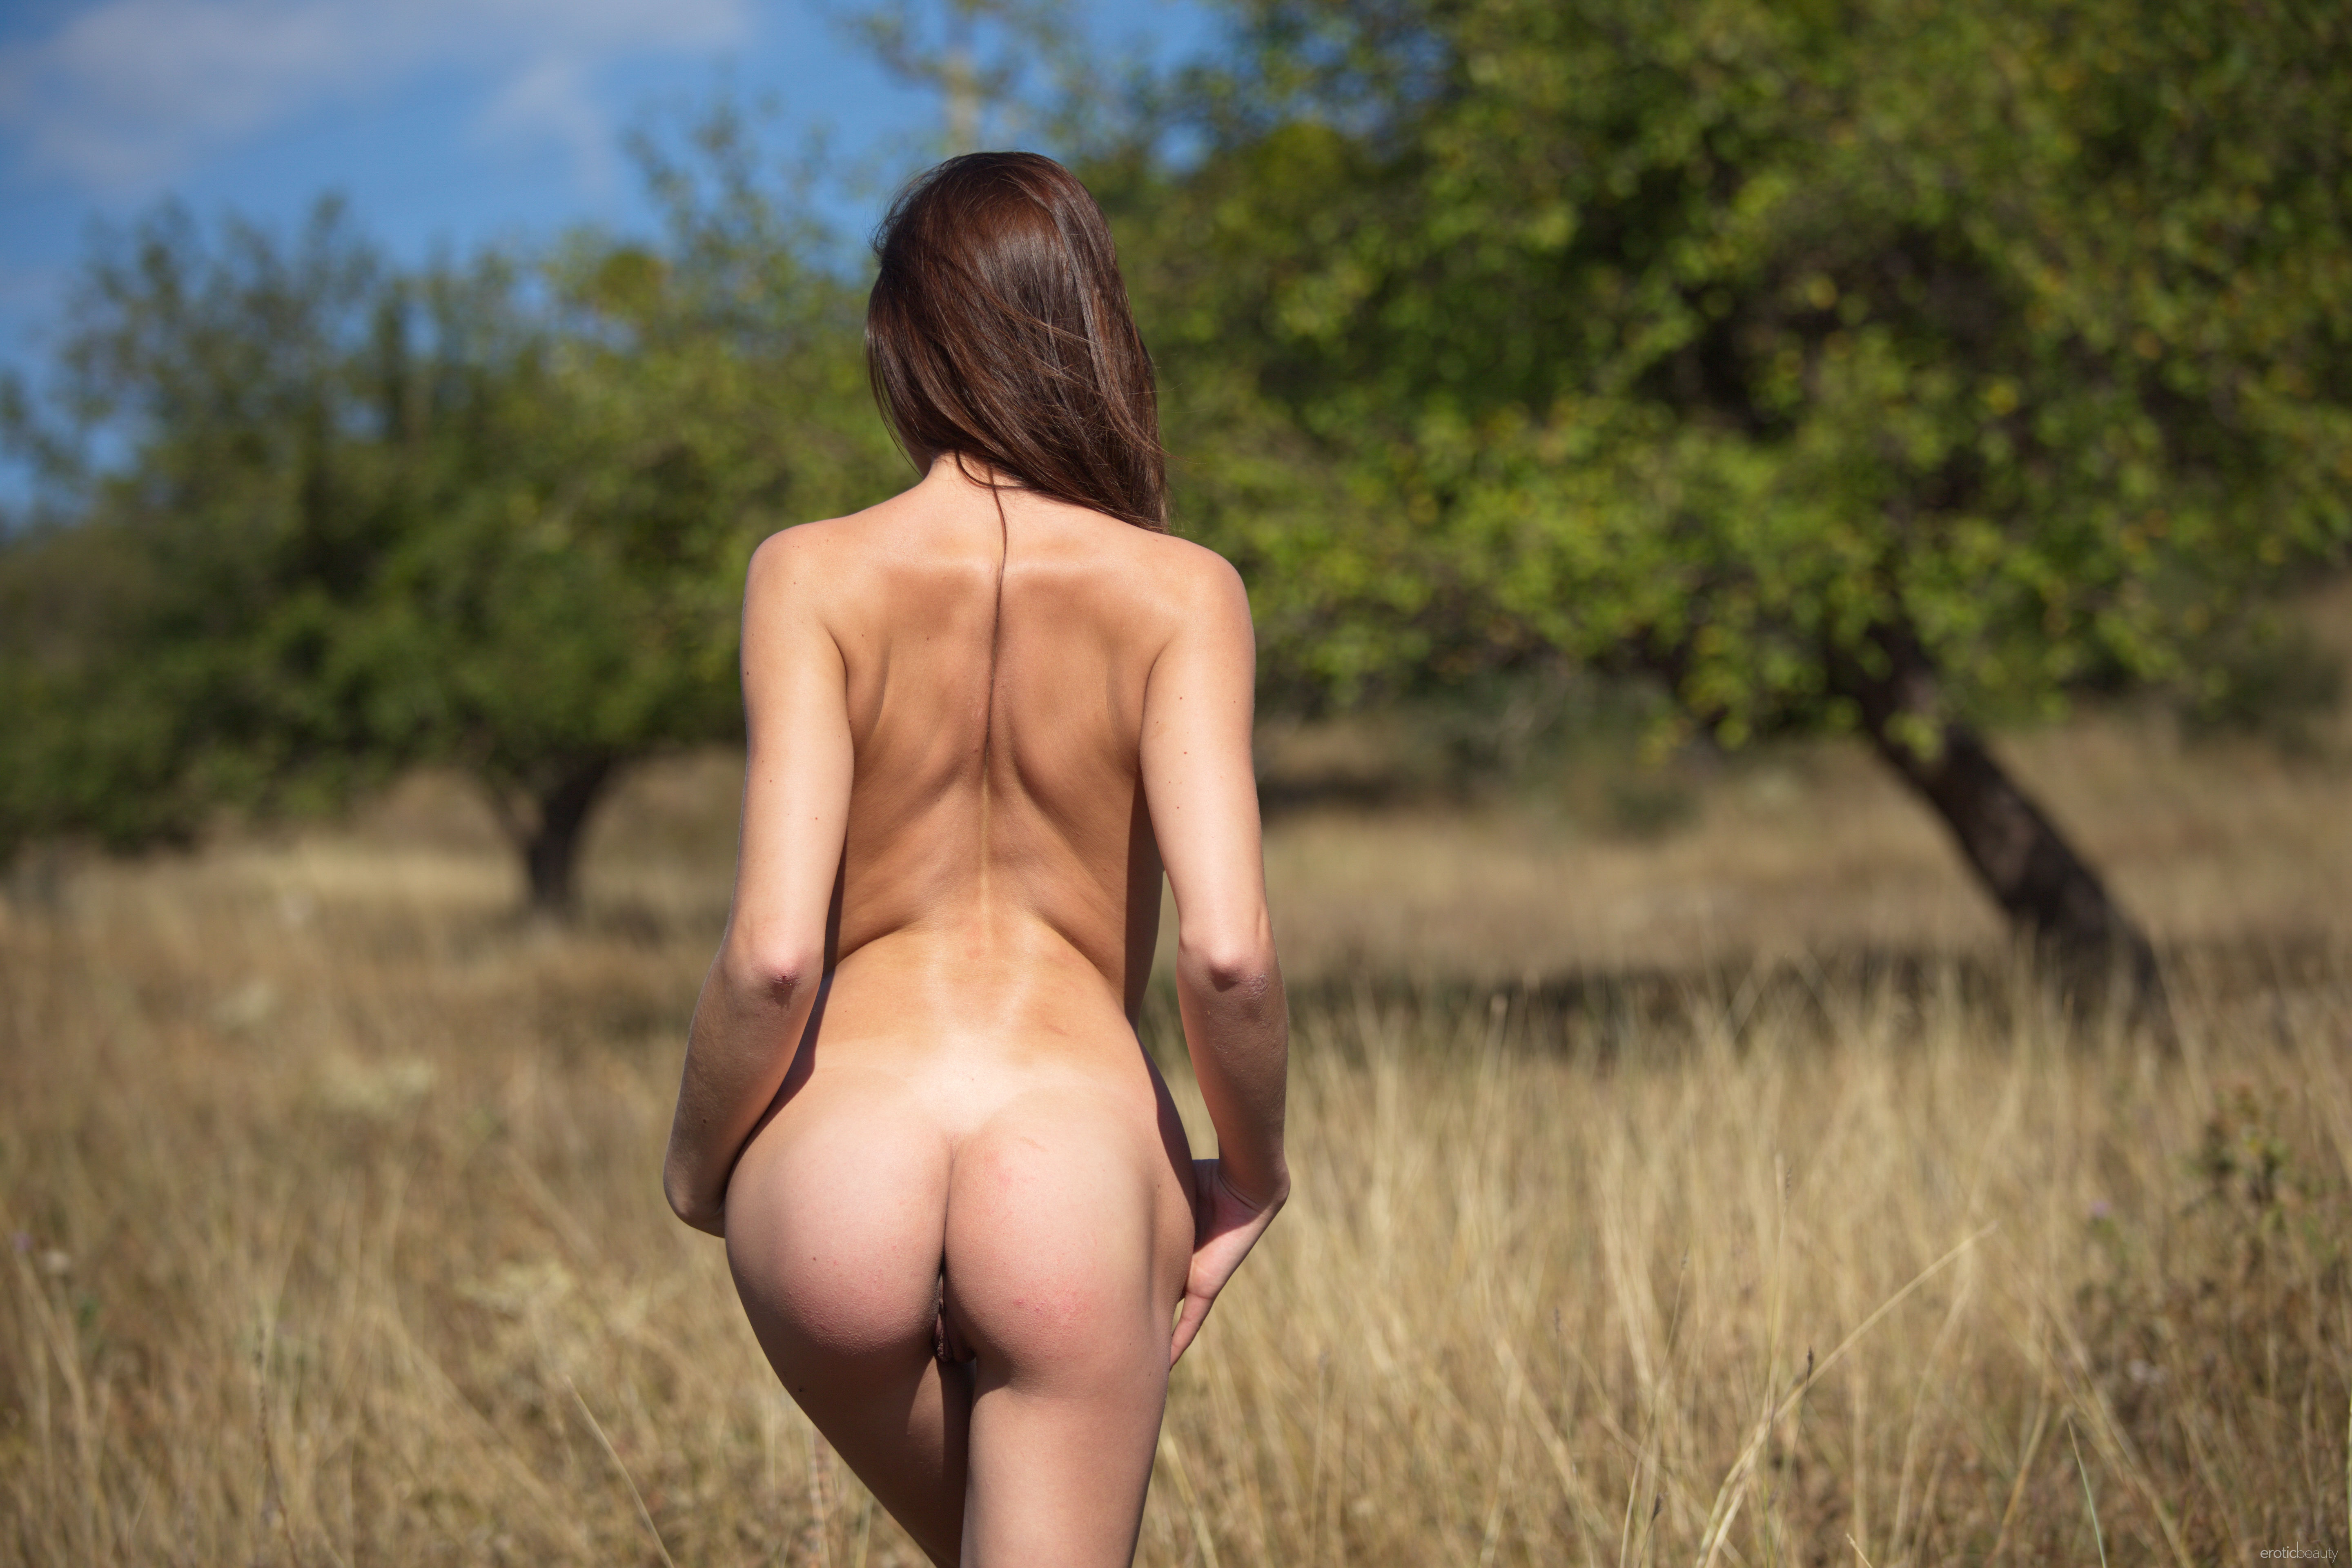 Thin girl nude looking back over her bony shoulder